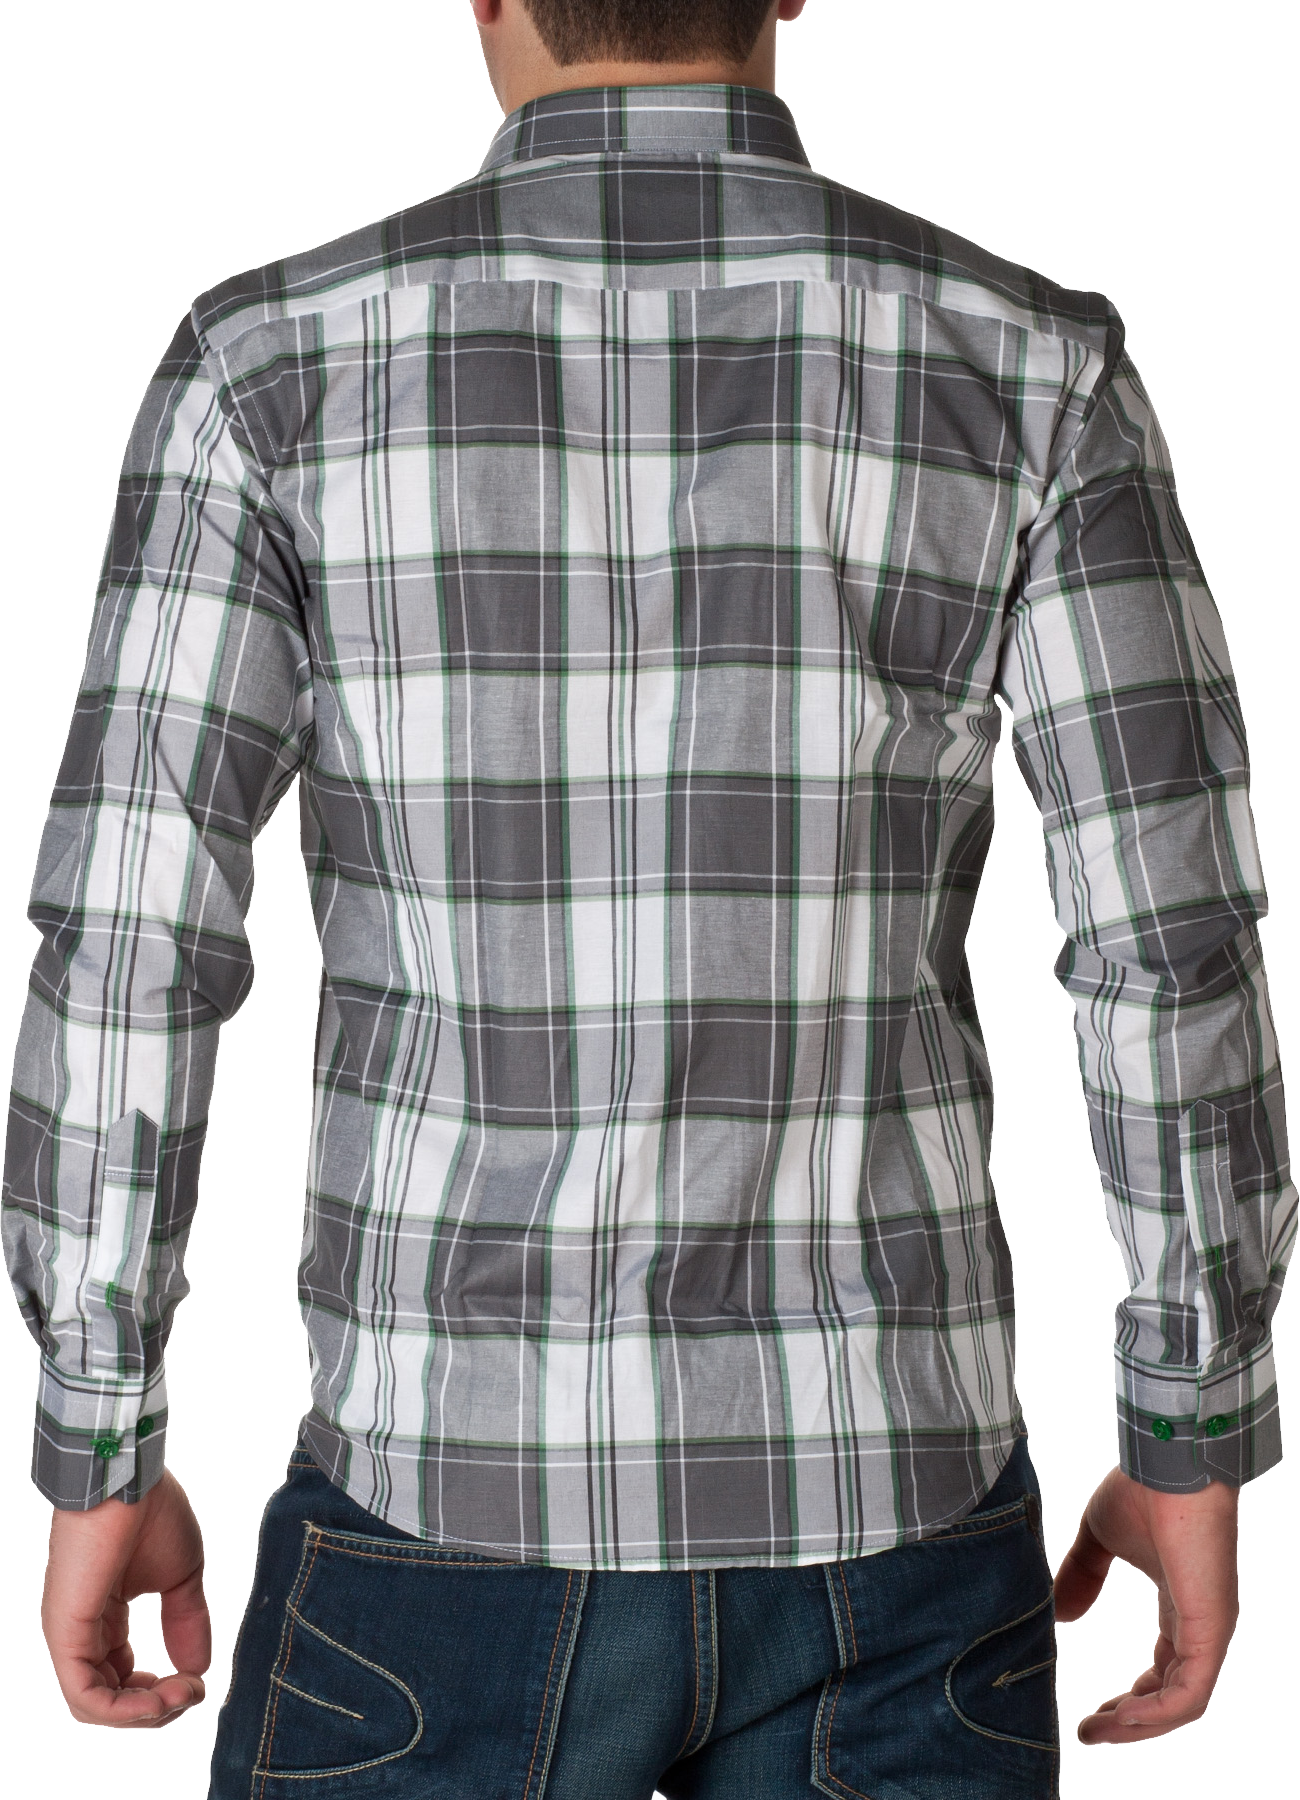 White & GreyCheck Full Dress Shirt